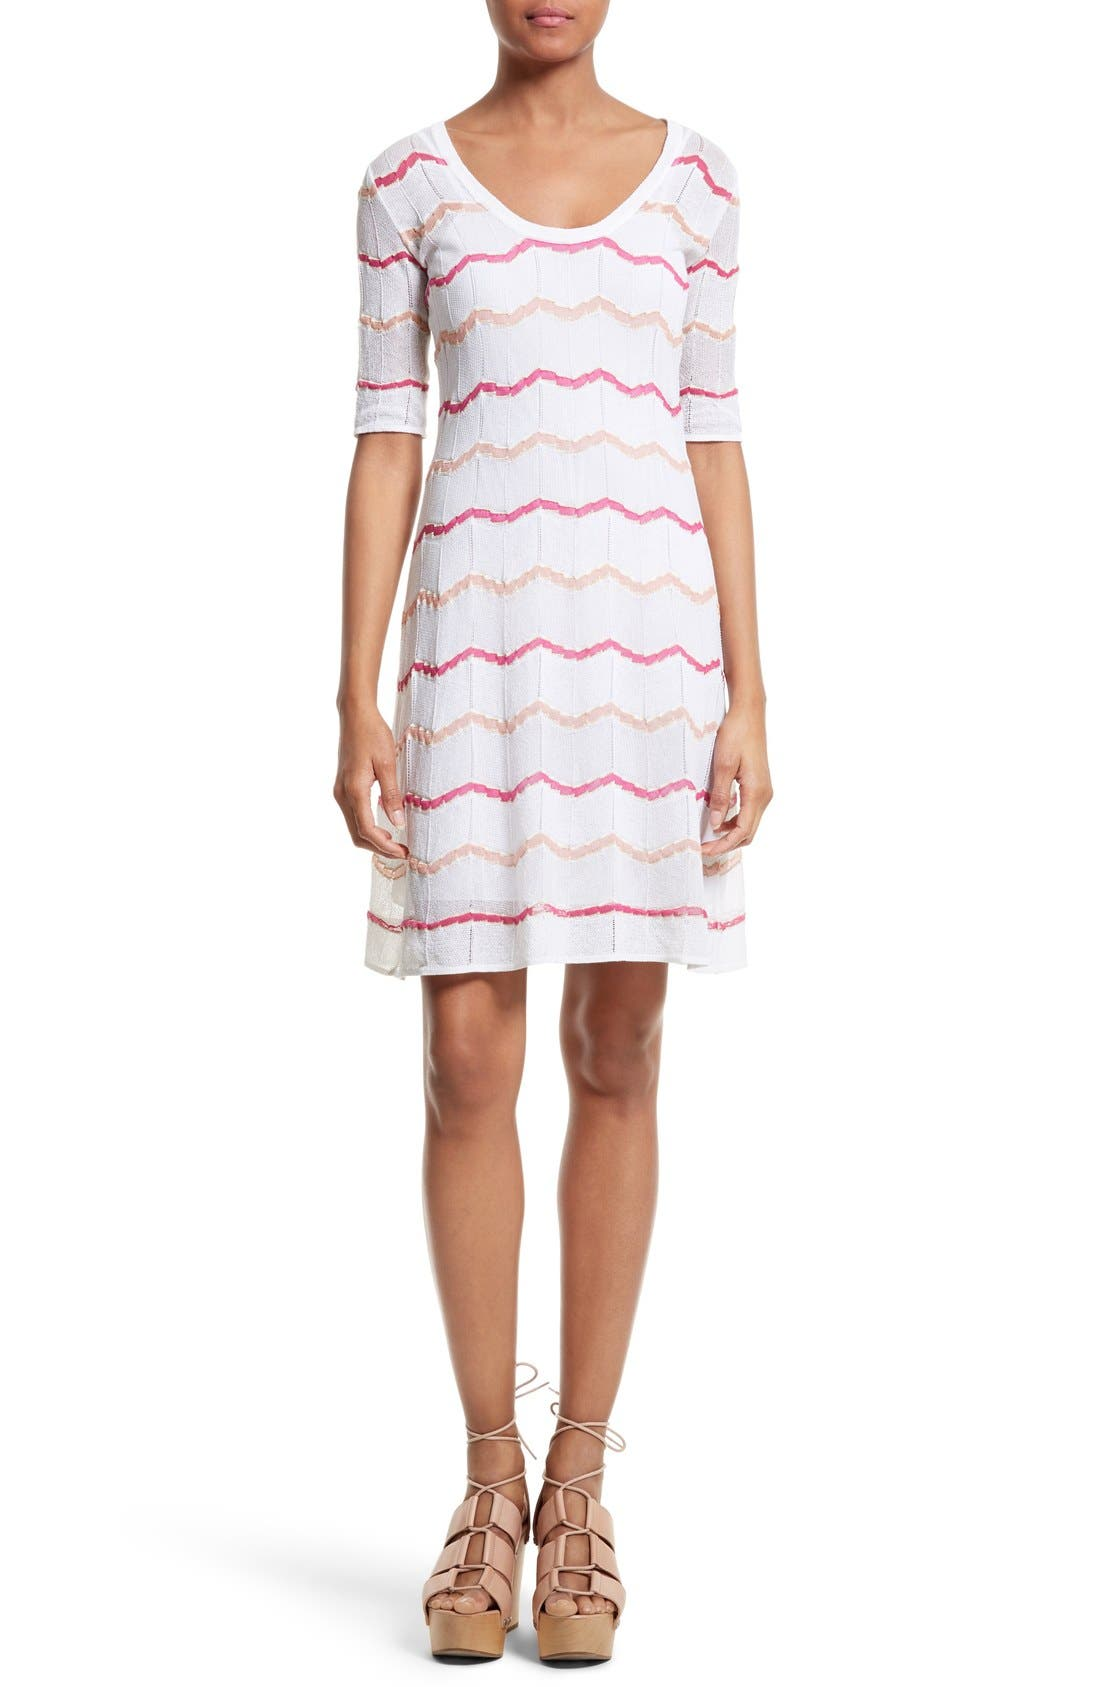 M MISSONI Zigzag Knit A-Line Dress